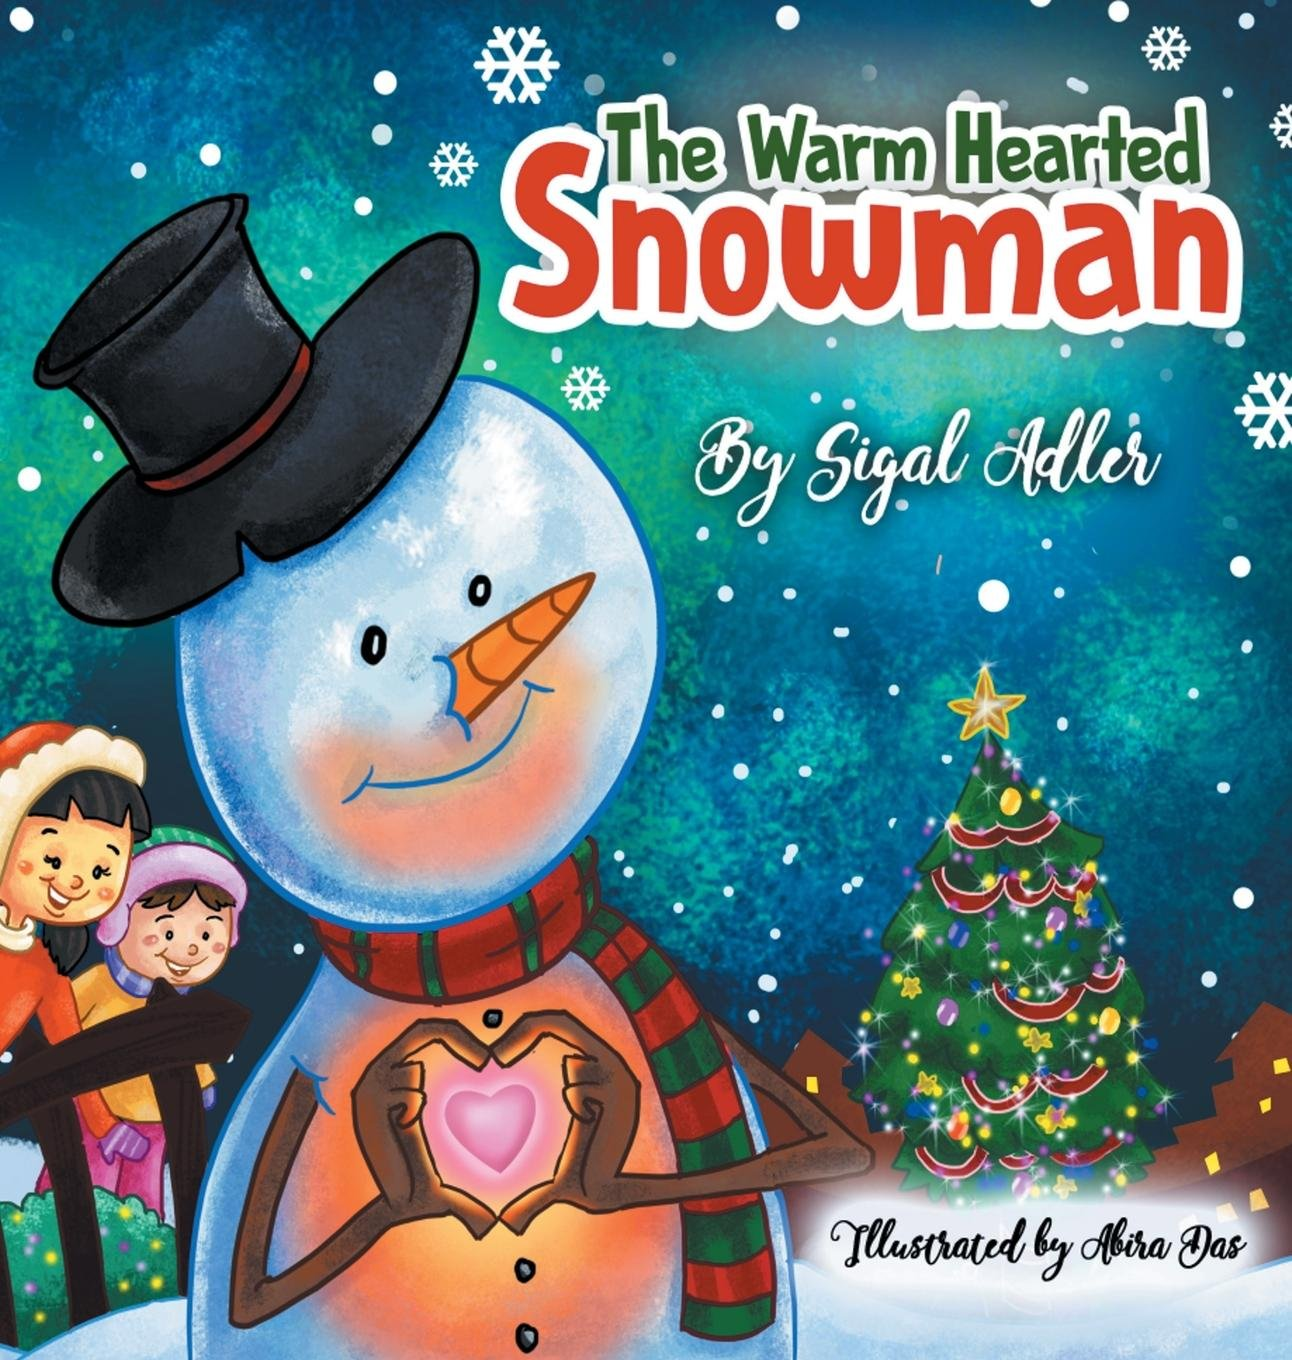 The Warm-Hearted Snowman: CHILDREN BEDTIME STORY PICTURE BOOK